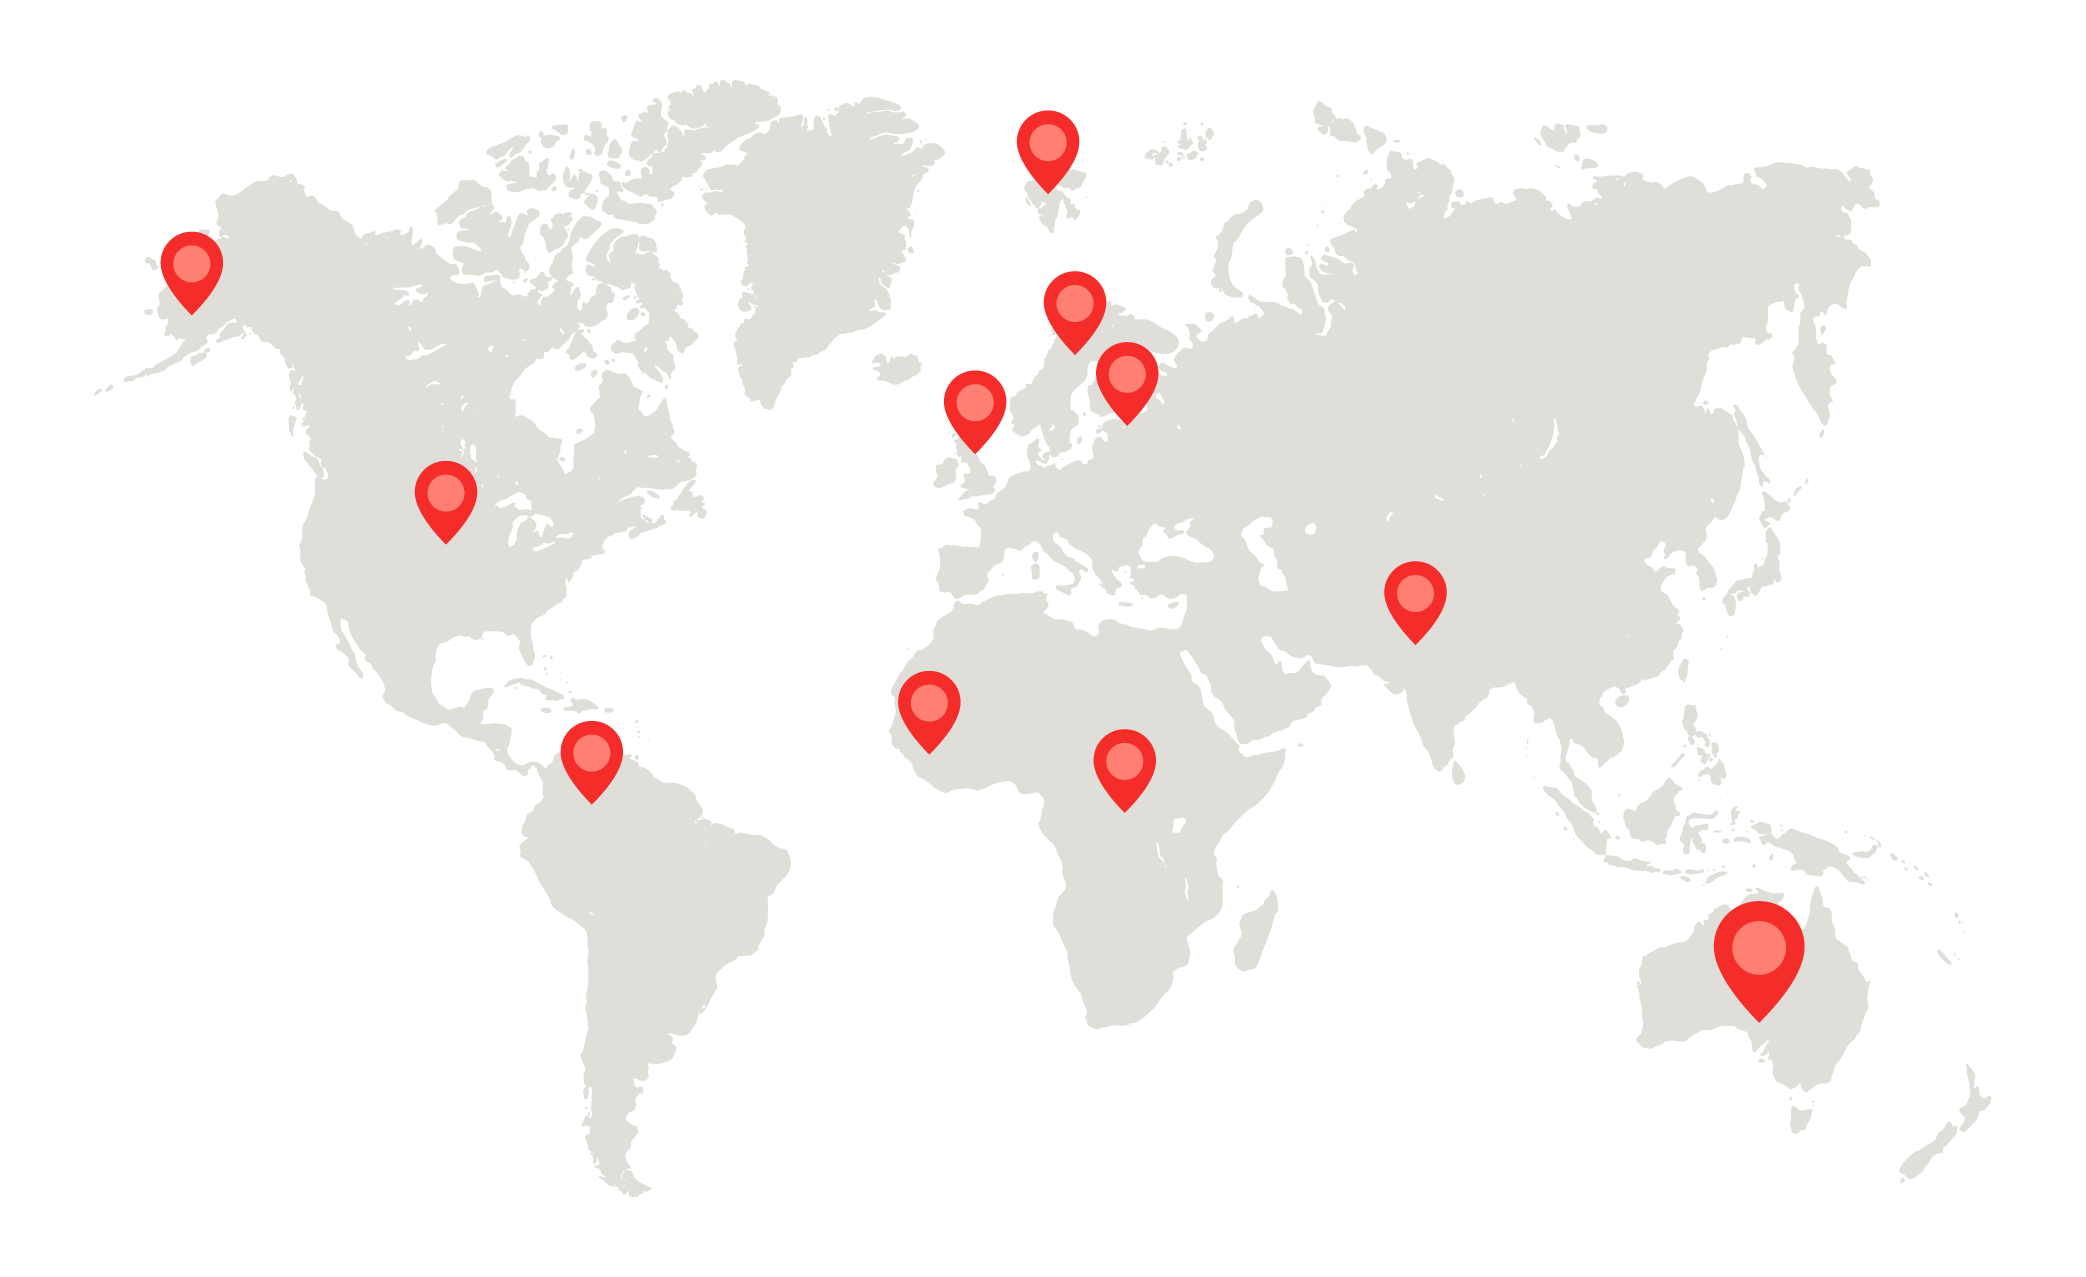 Aball1 has reached over 132,000 children to date.17% of all schools in Norway now use it, (46% in Oslo) as well as a growing number in the UK and refugees from countries including Sudan, Syria and Afghanistan. - We are proud to be the exclusive partner for Aball1 in Australia.